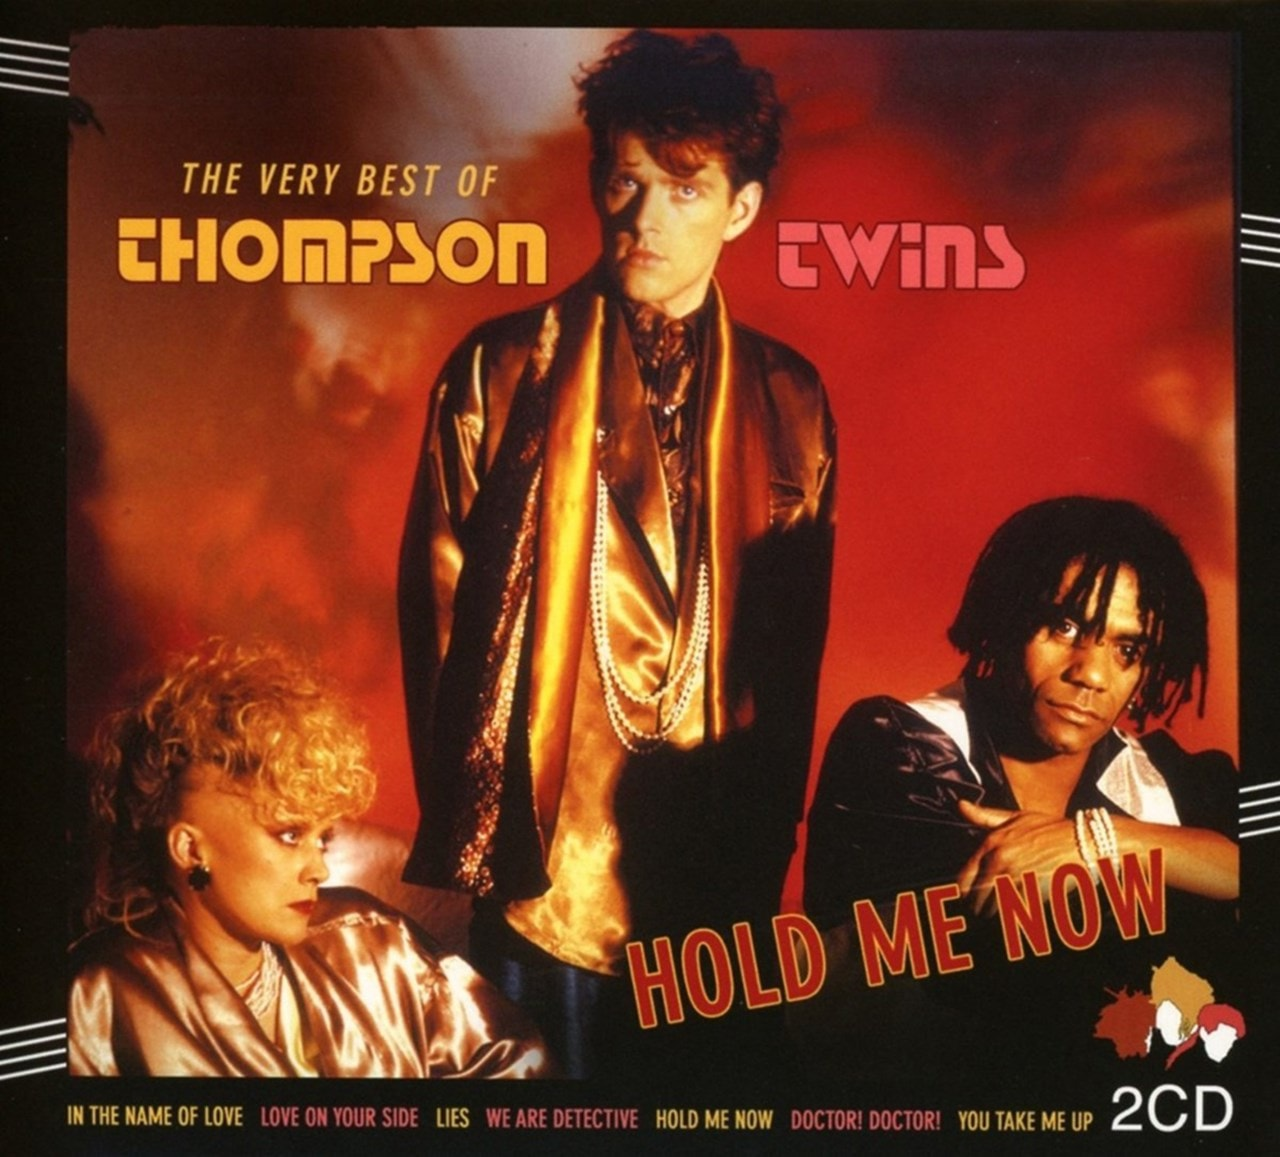 Hold Me Now: The Very Best of Thompson Twins - 1